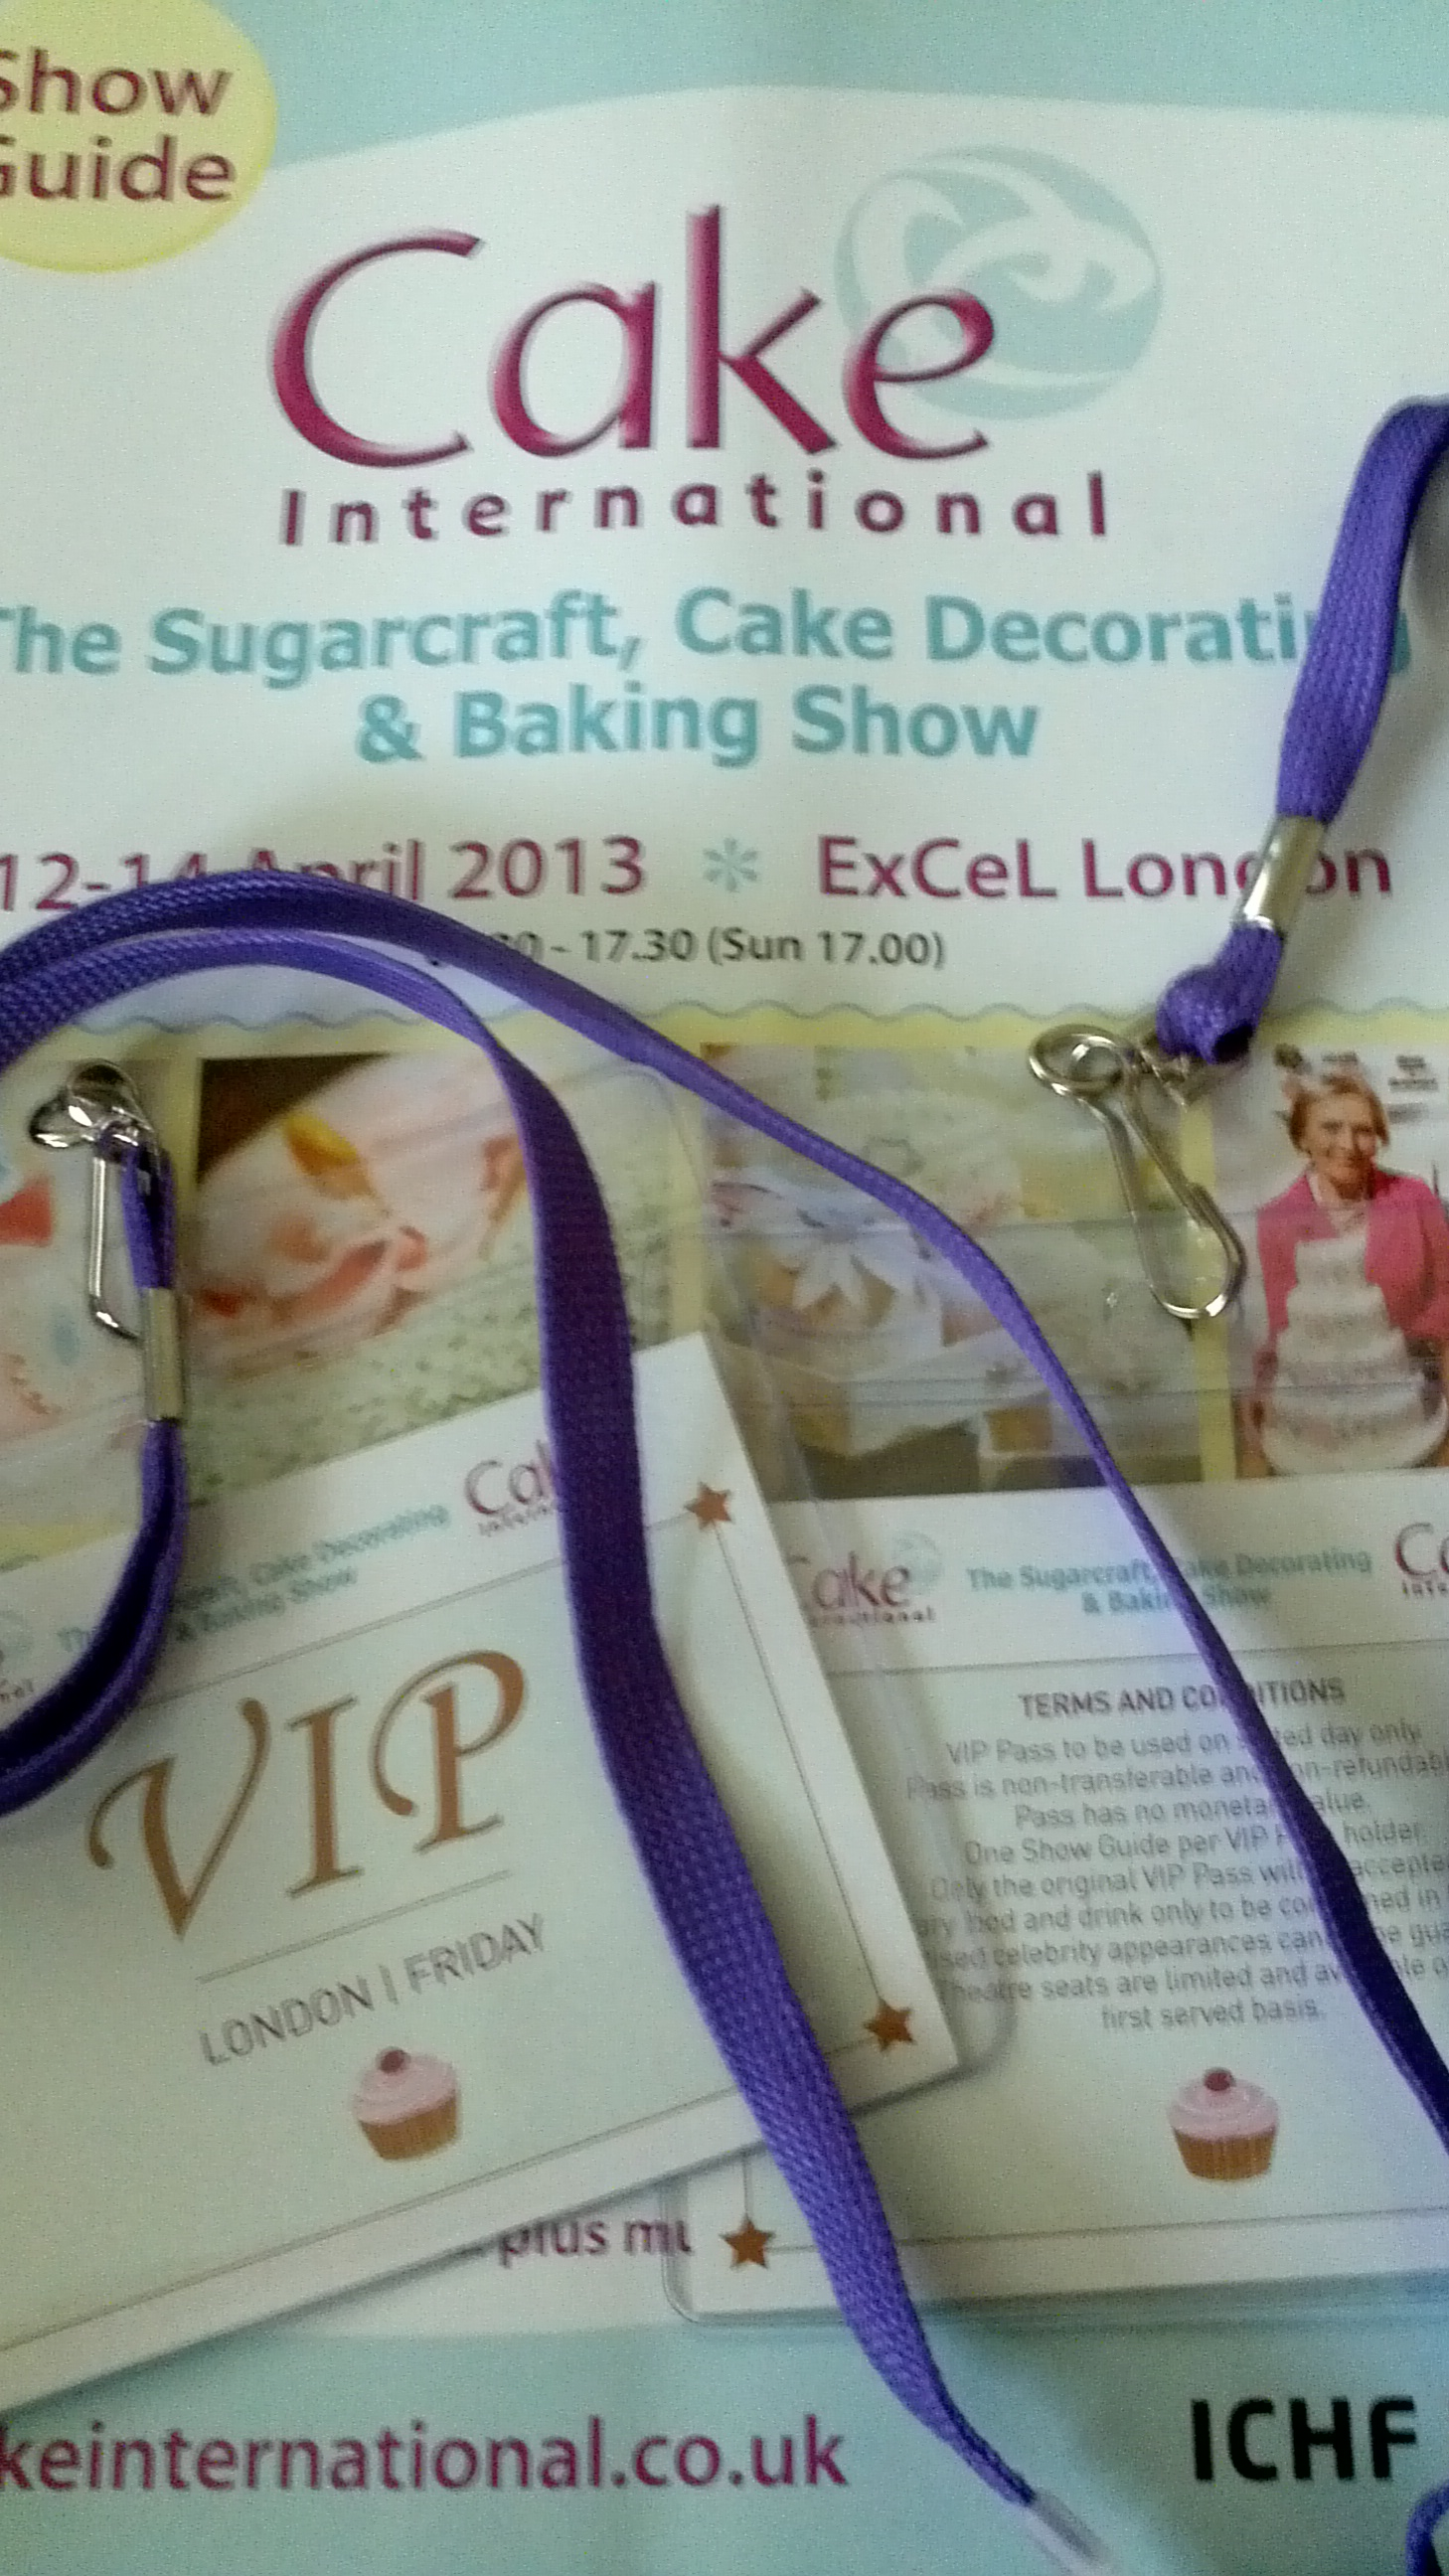 Sugarcraft And Cake Decorating Show : Cake International   Sugarcraft, Cake Decorating & Baking ...